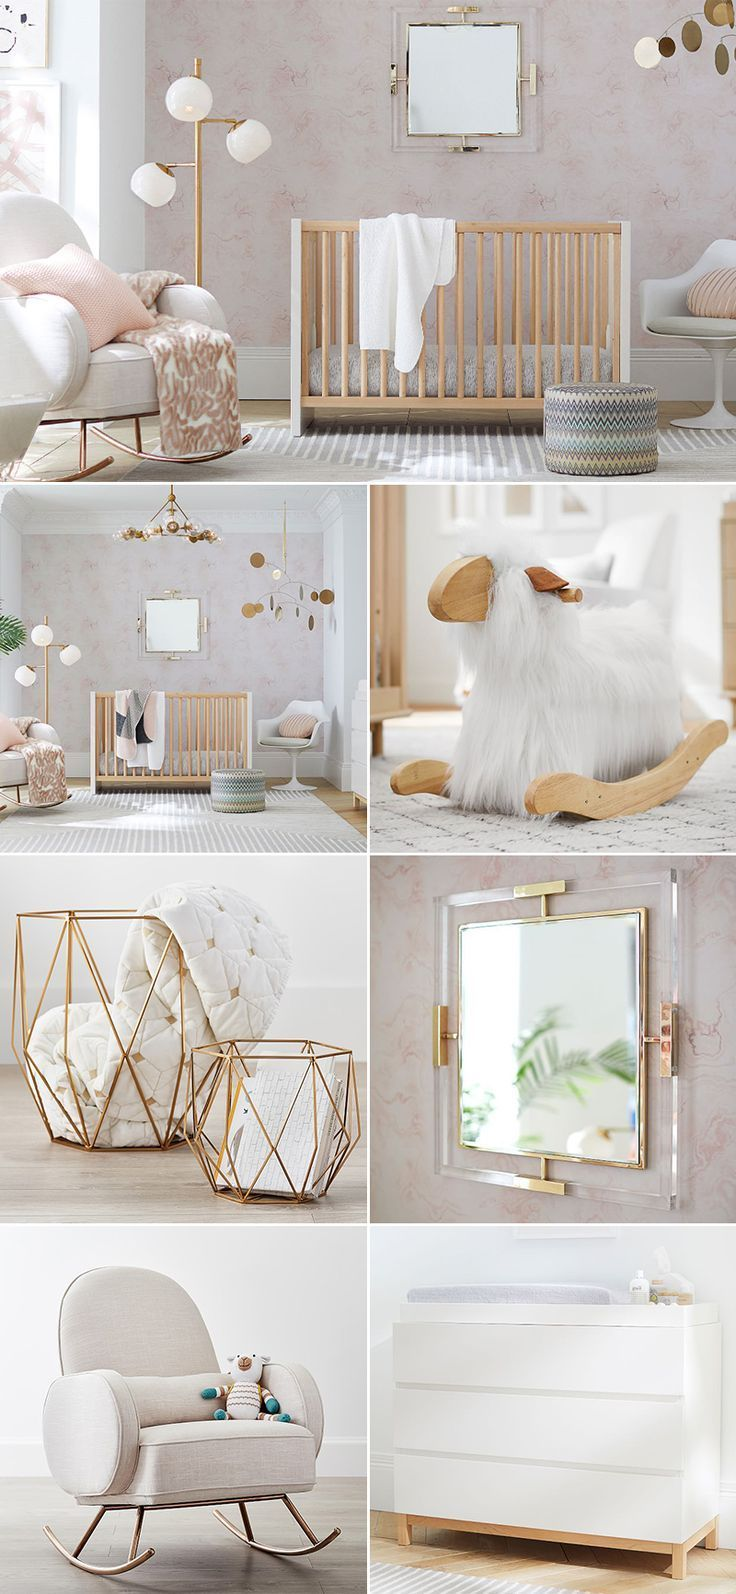 Earthy Nursery Trend 5 Modern Neutral Nursery Room Ideas We Love Neutral Glam Elegant Grey W Neutrale Kinderzimmer Neutrale Babyzimmer Kinderzimmer Ideen